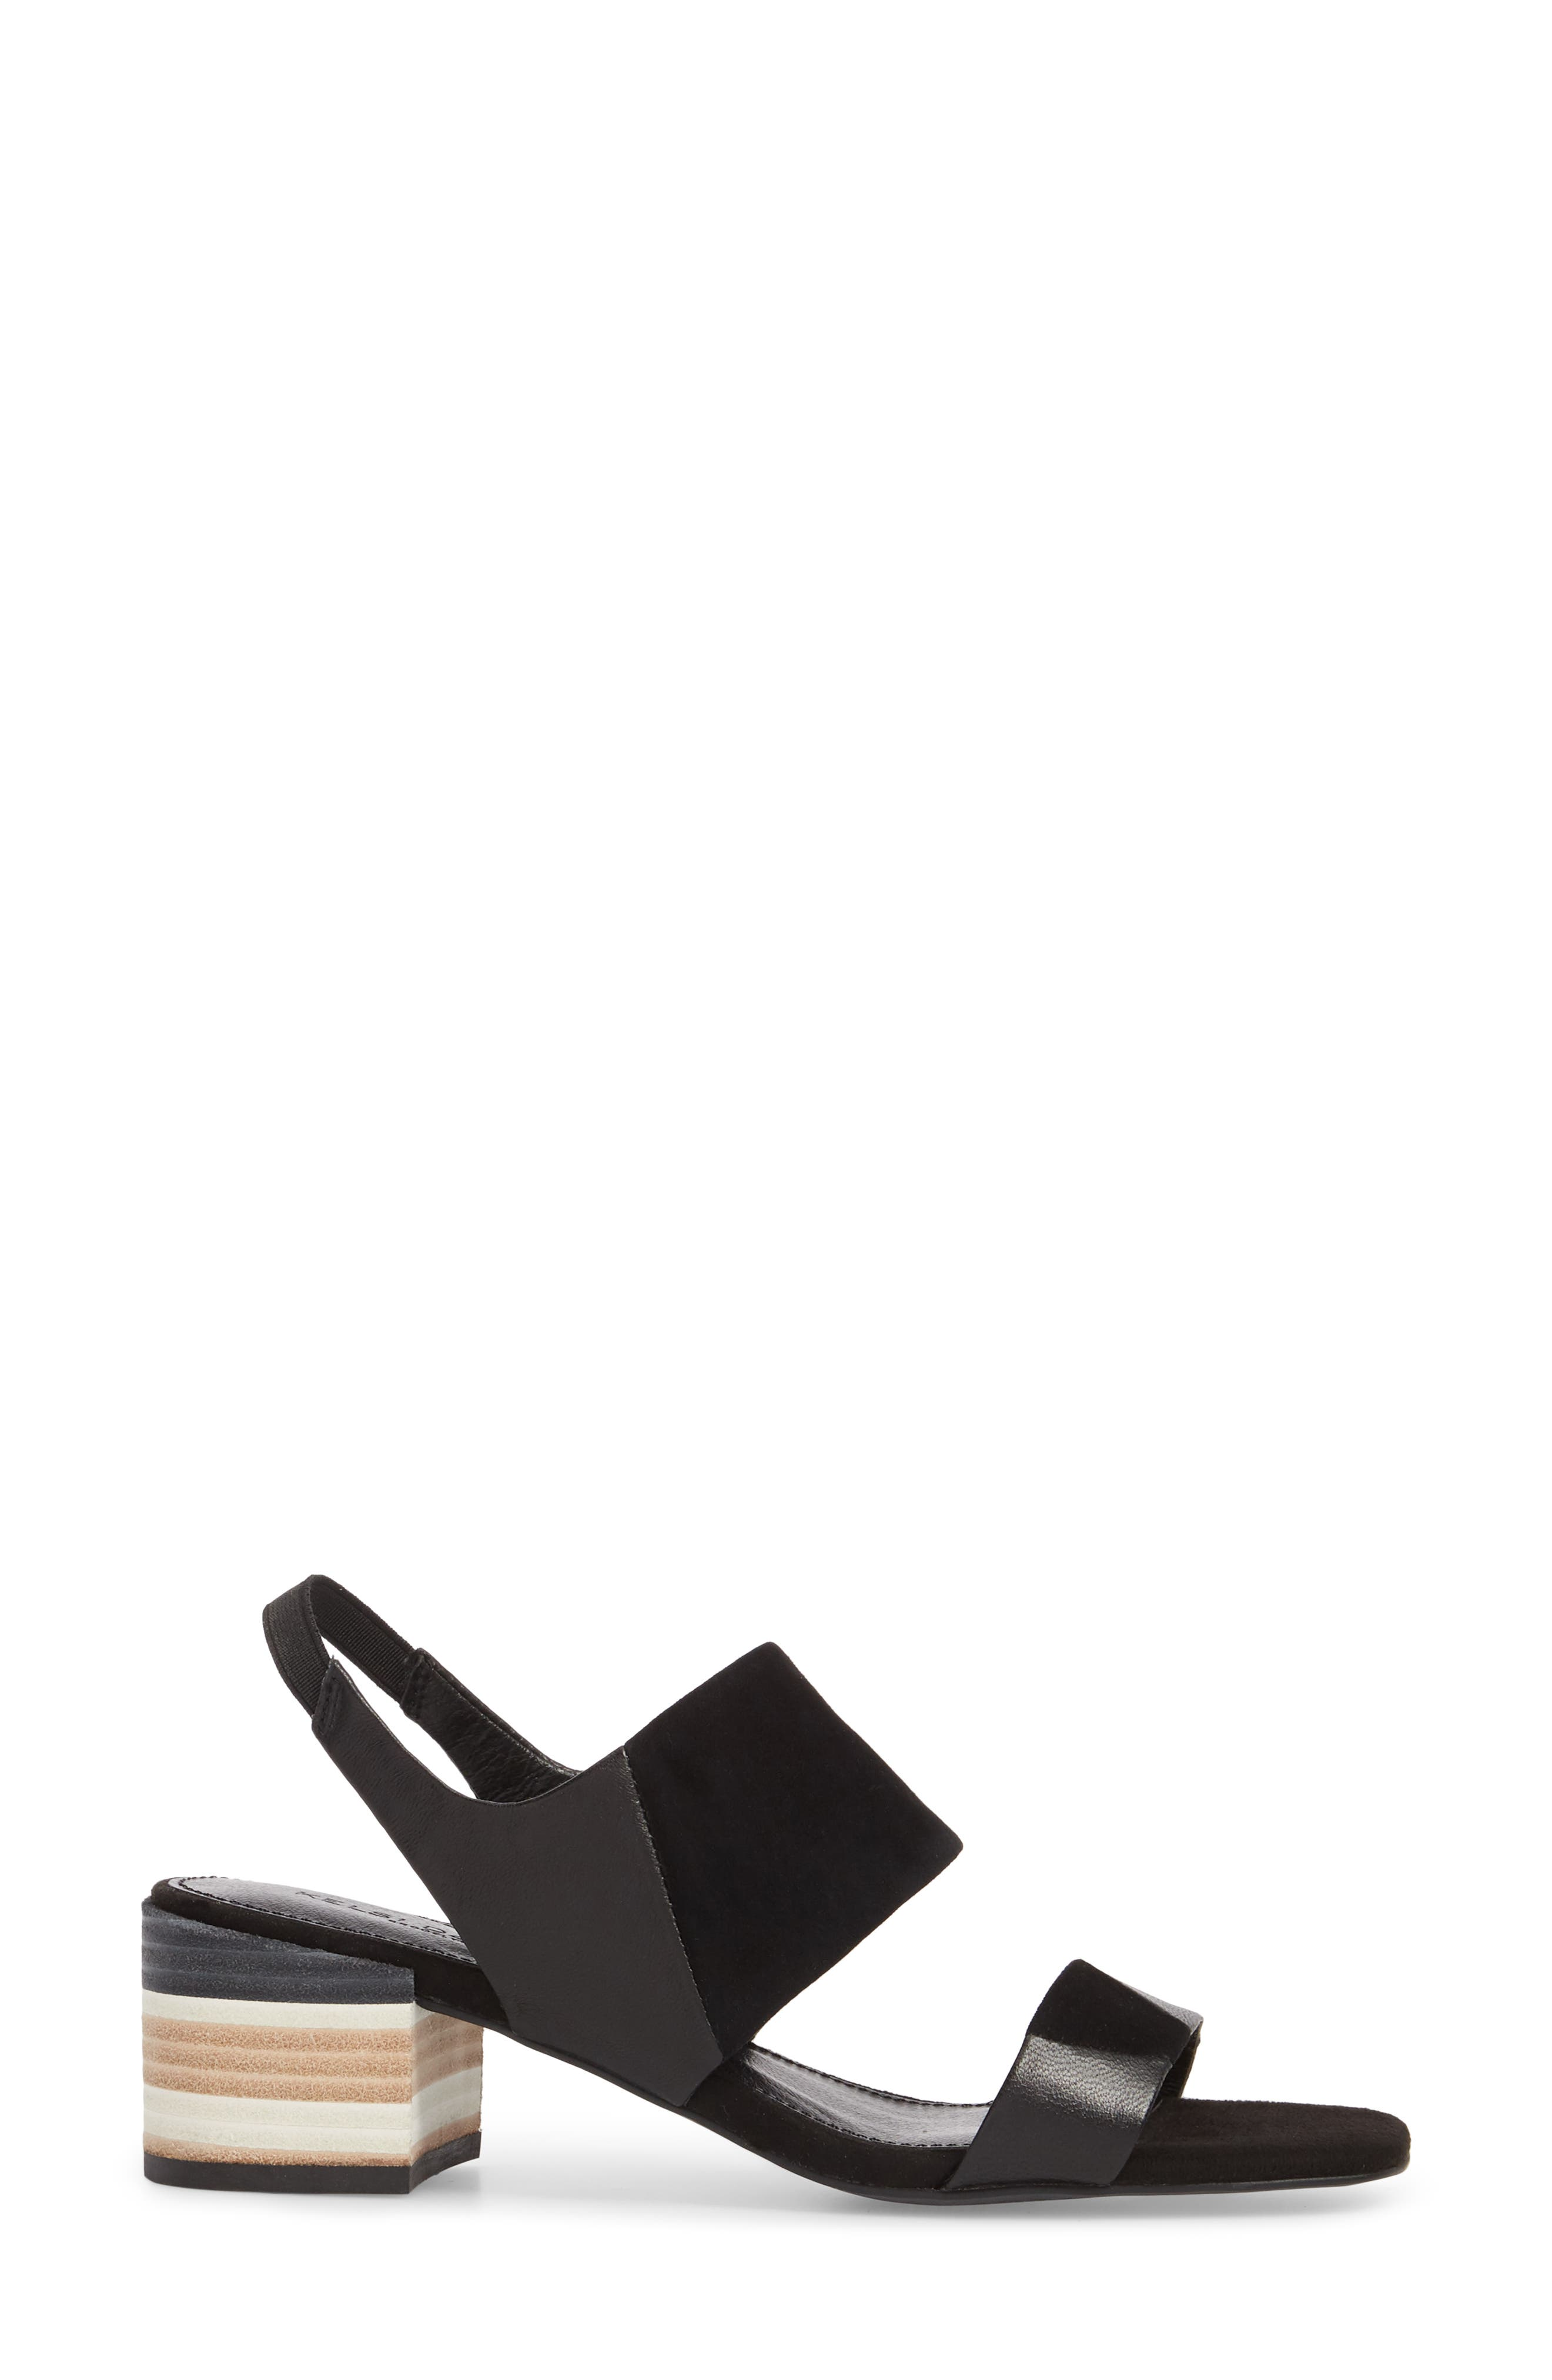 Shiloh Block Heel Sandal,                             Alternate thumbnail 3, color,                             001